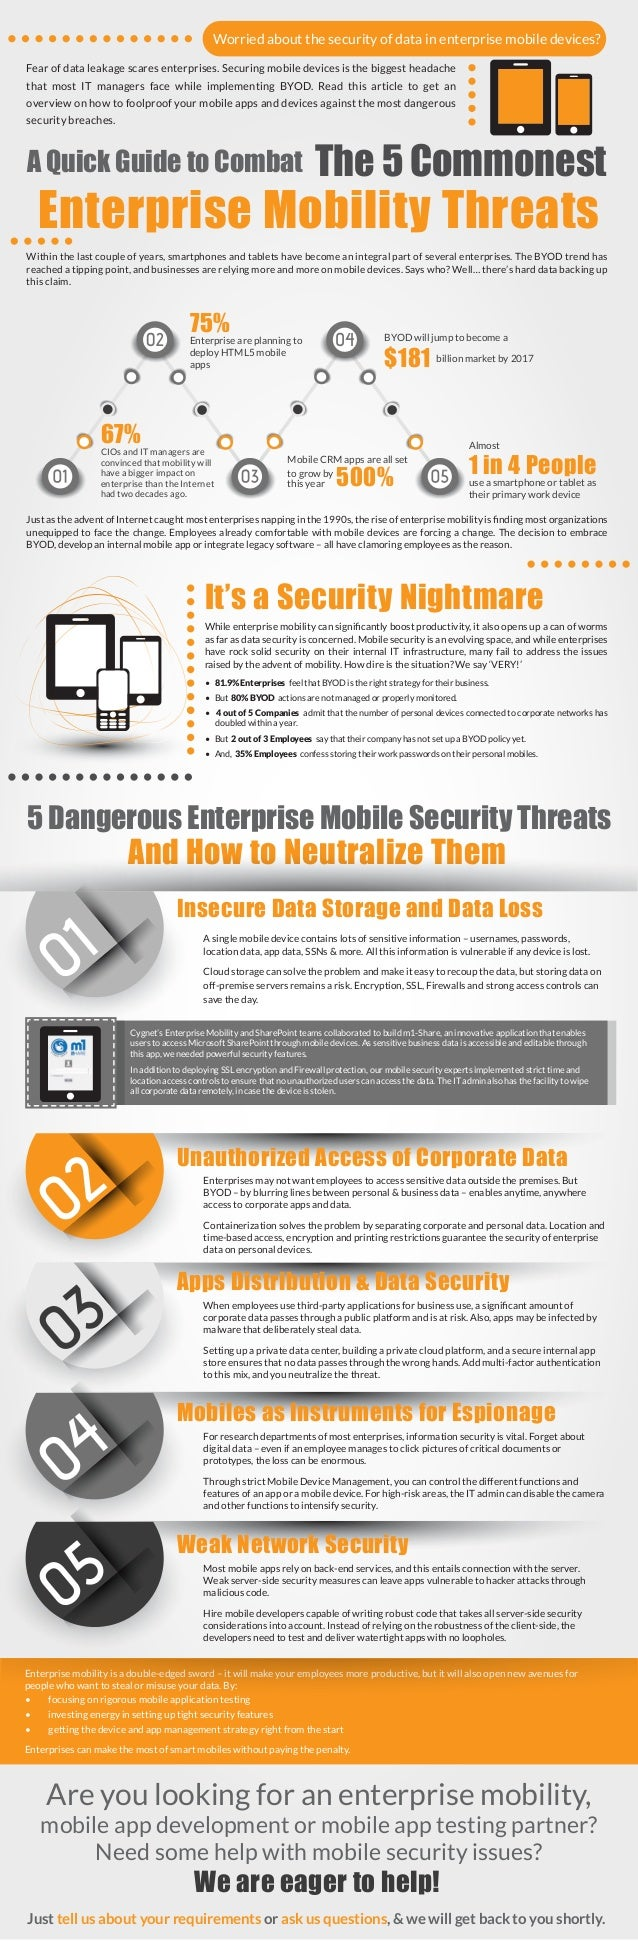 5 Sure-Fire Ways to Tighten the Screws on Enterprise Mobile Security